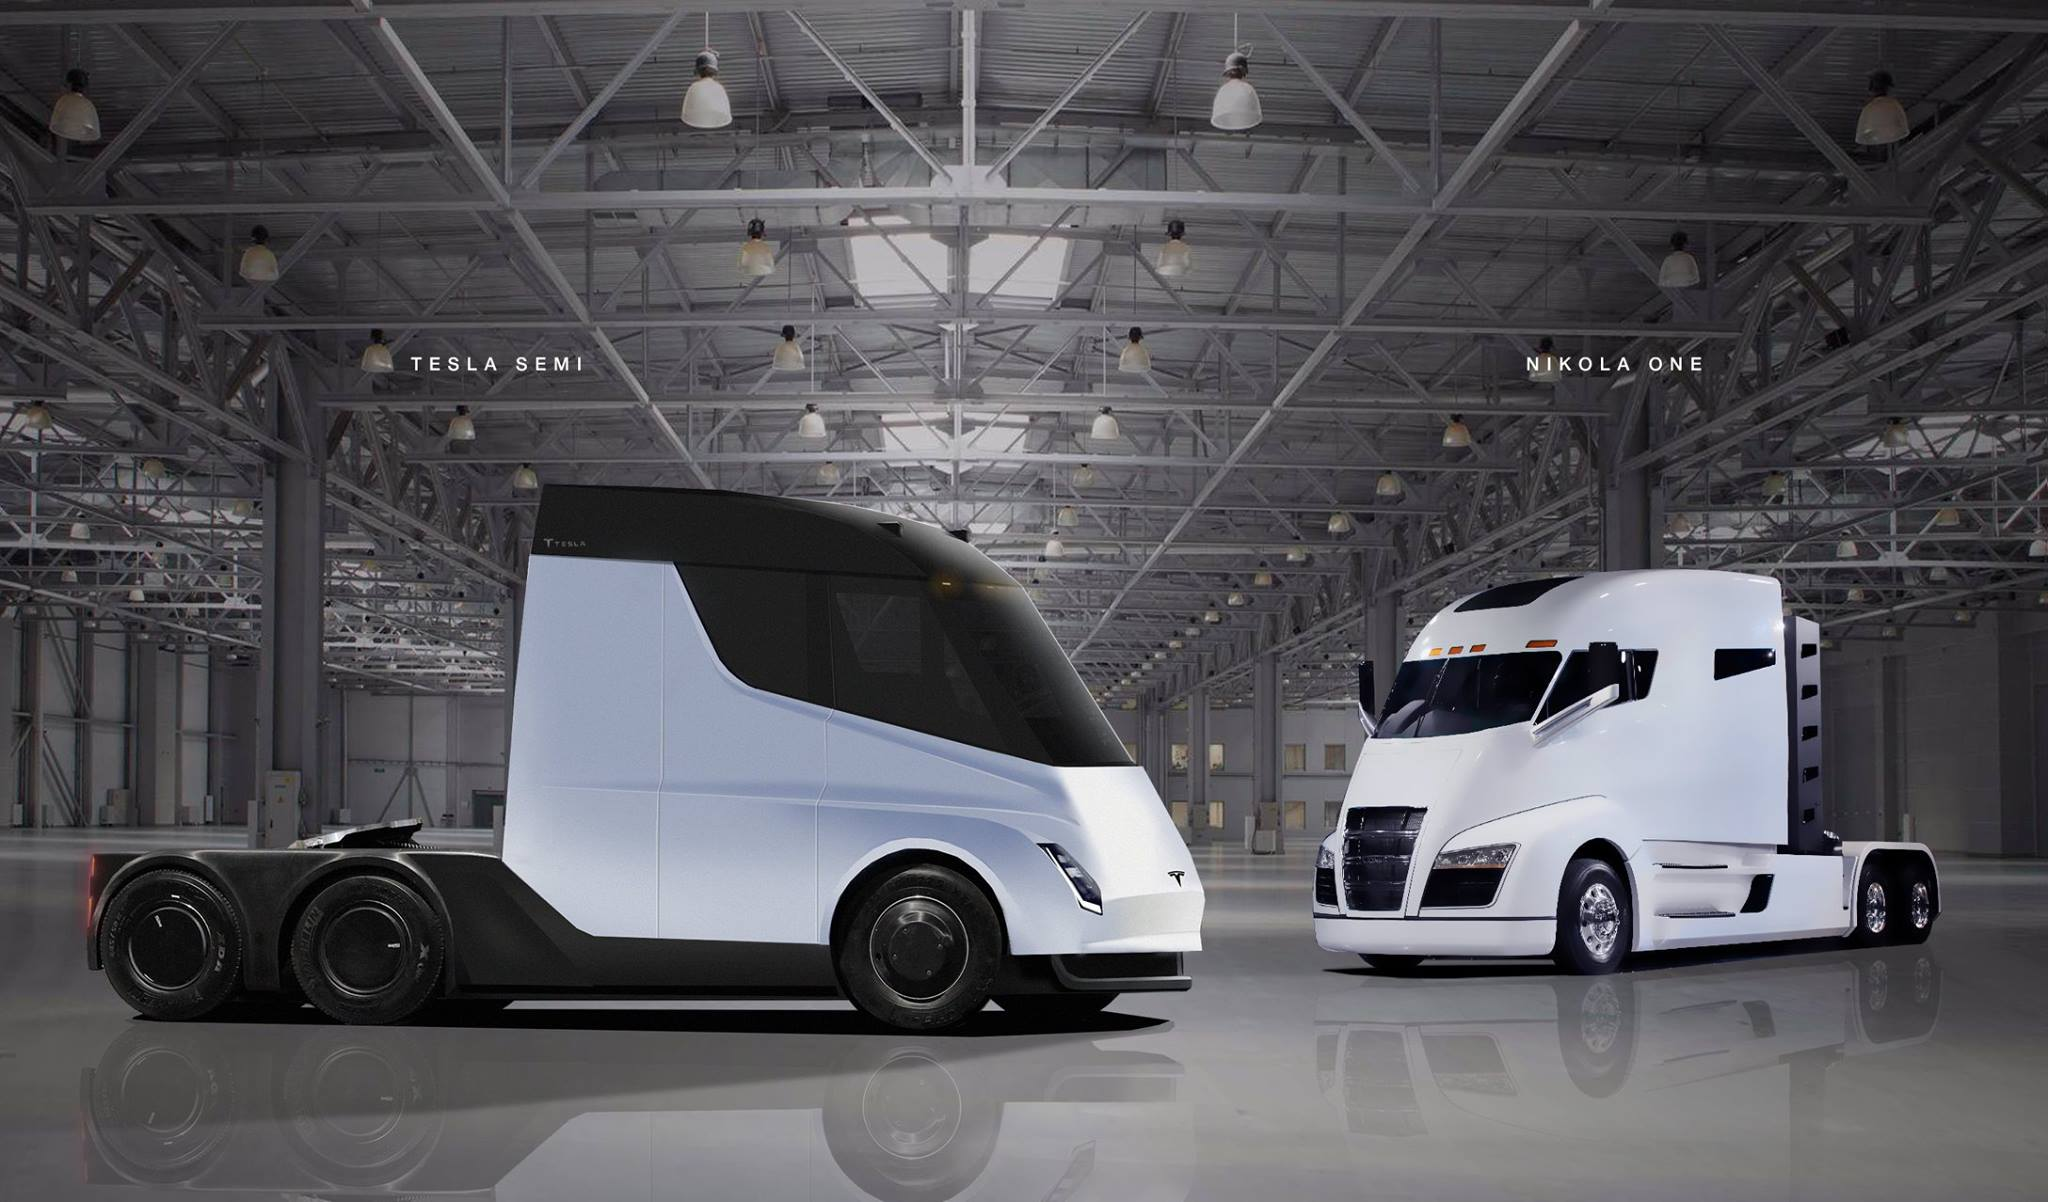 Tesla Semi Truck With Crew Cabin Brought To Life In Latest Renderings